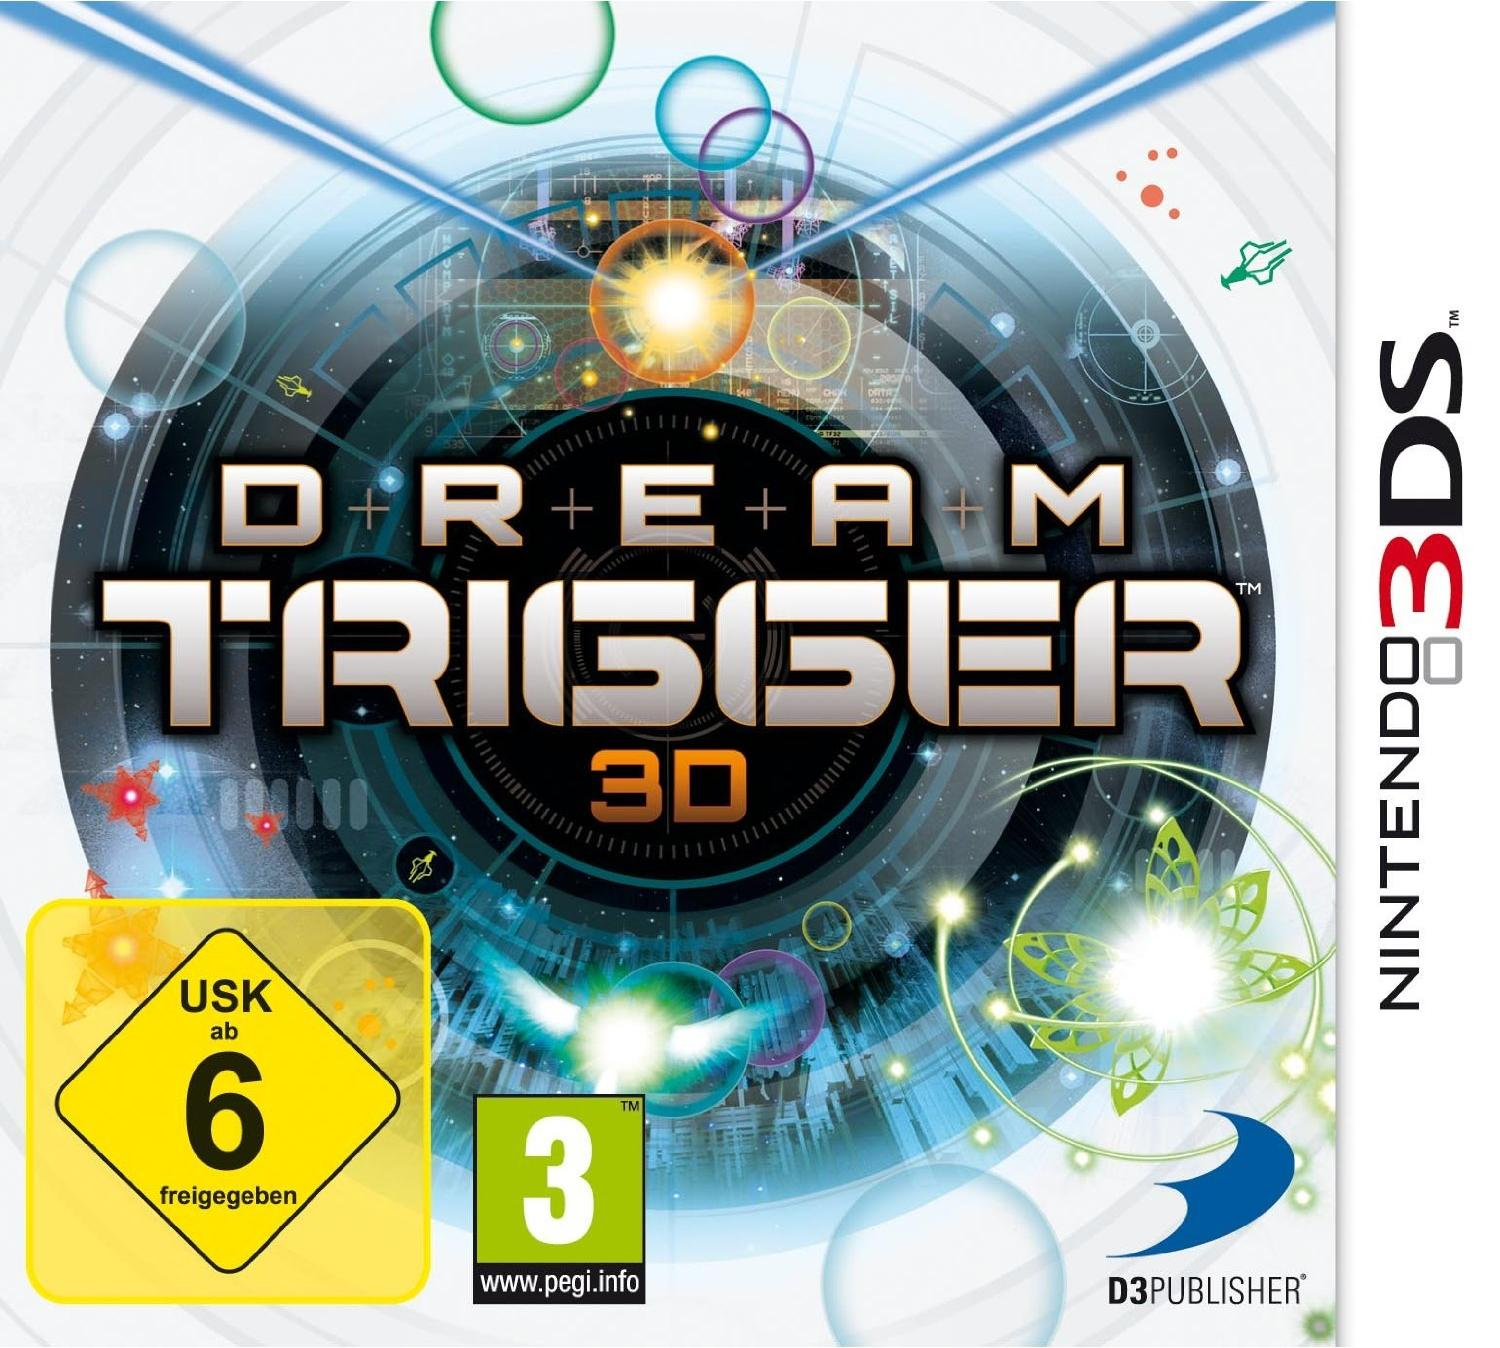 DreamTrigger3D 3DS Jaquette 002